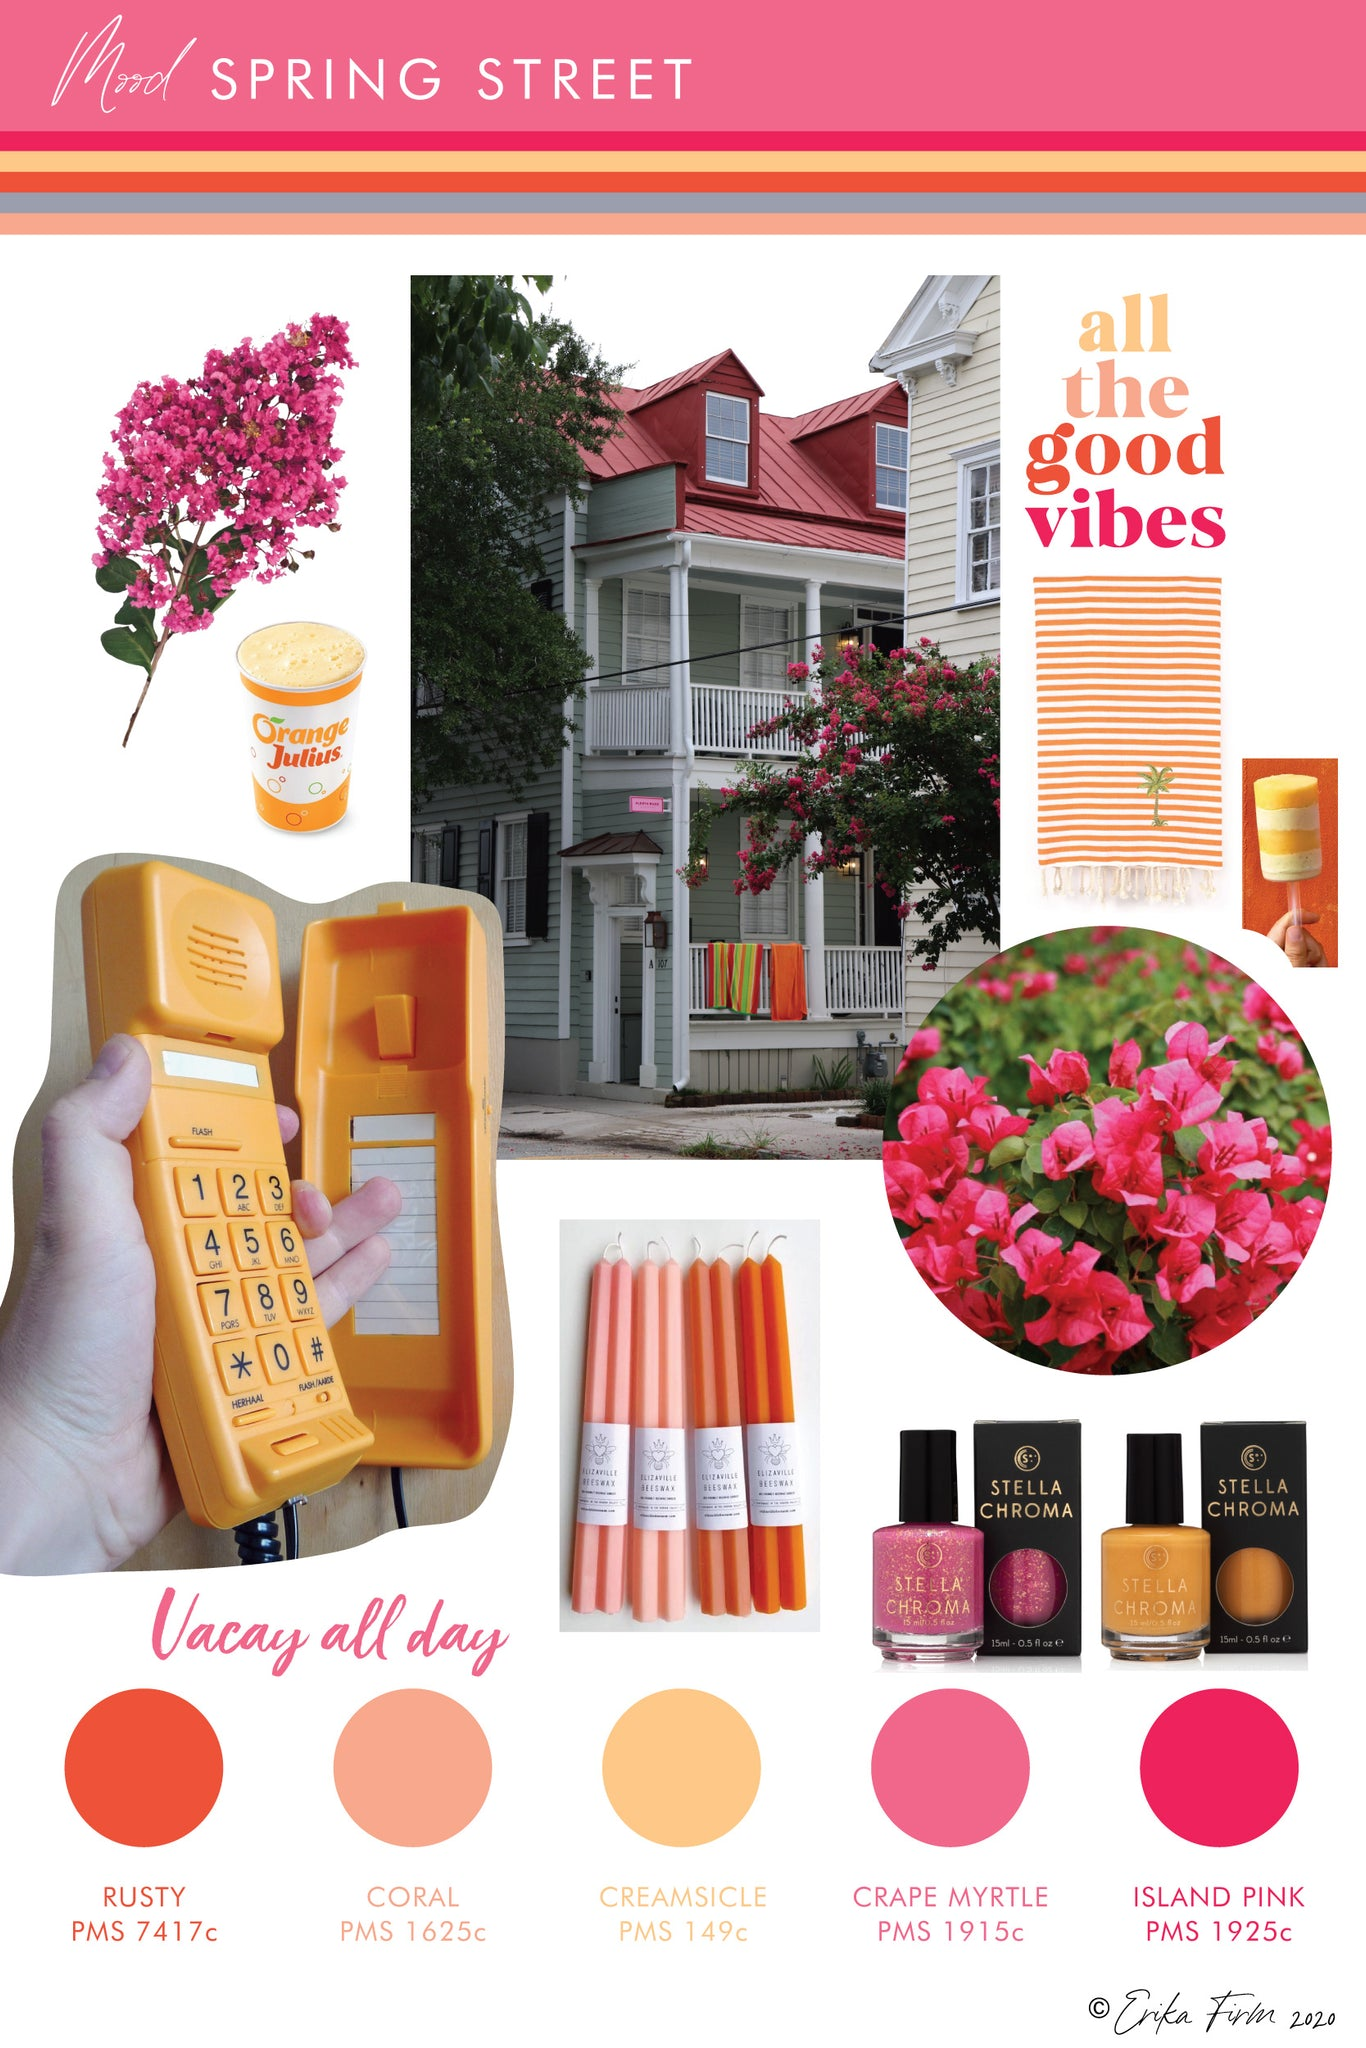 Mood Board Spring Street Charleston South Carolina by Erika Firm Rusty orange, coral, creamsicle, crape myrtyle, and island pink